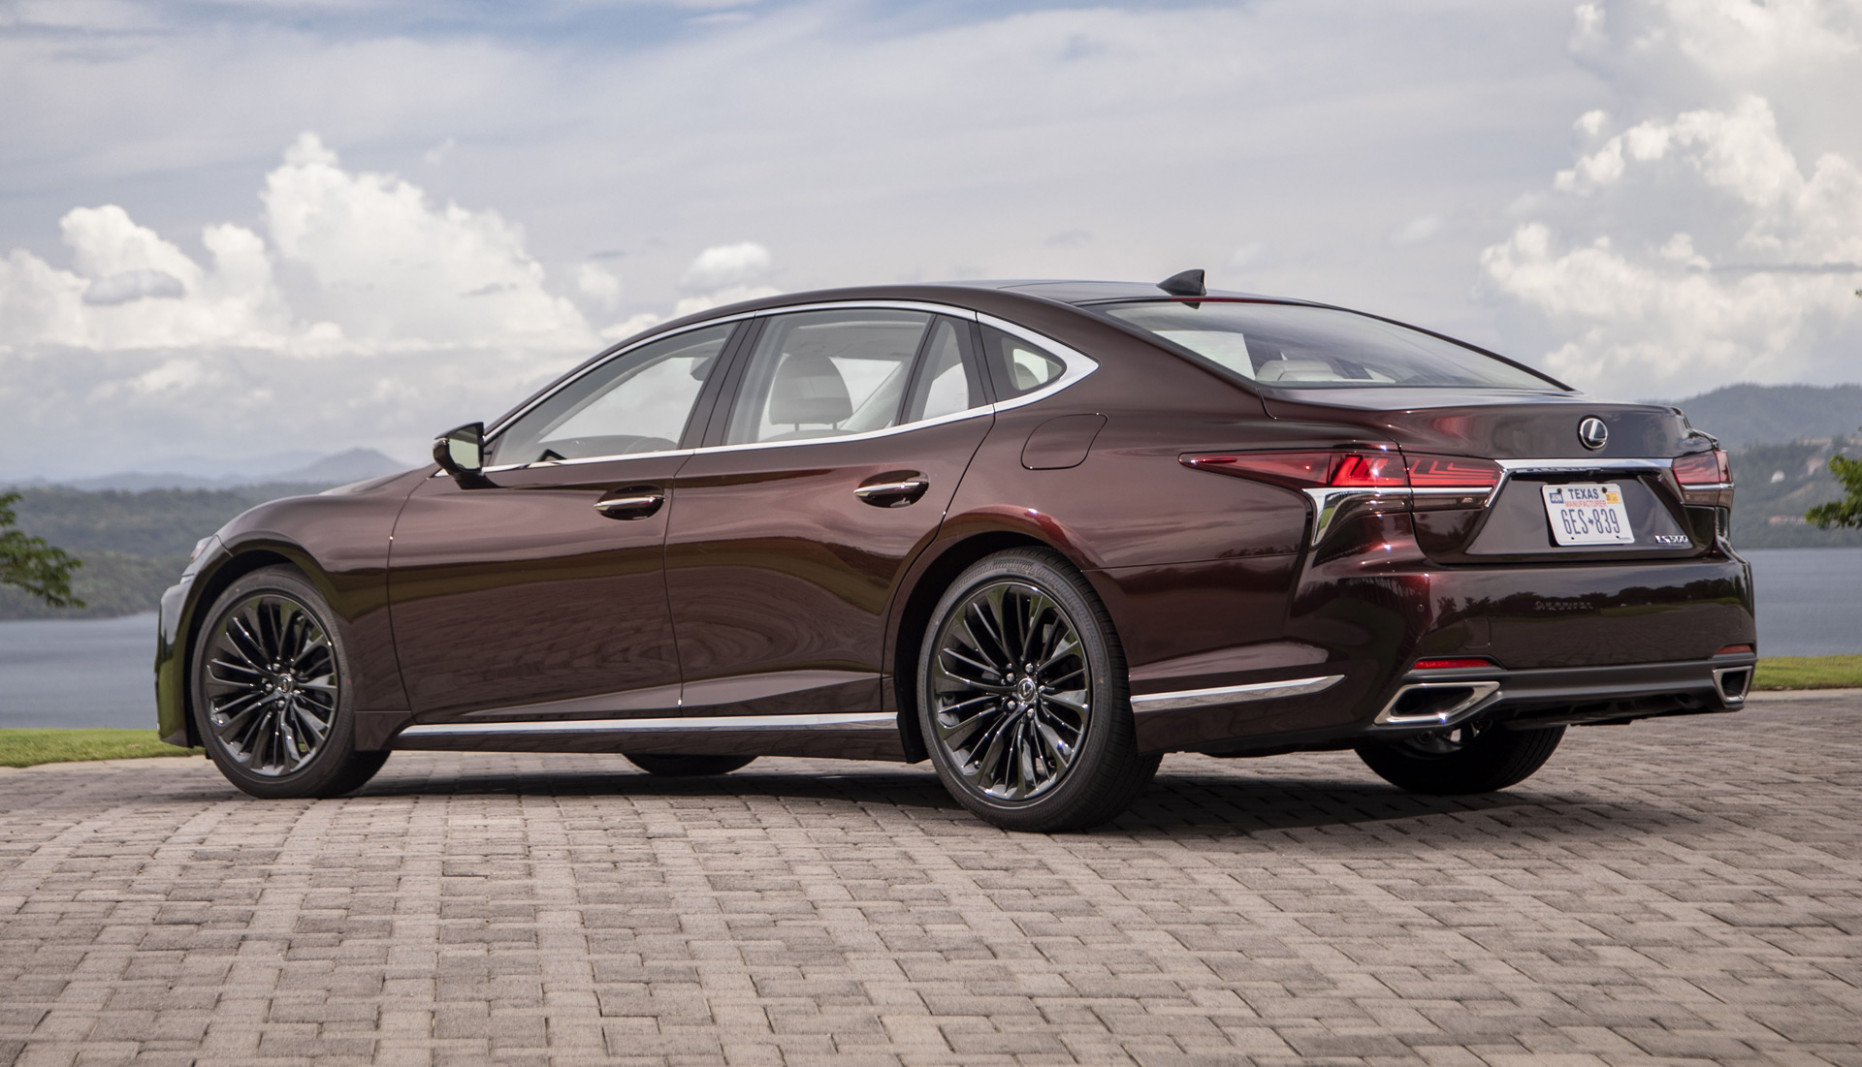 8 Lexus LS Review, Ratings, Specs, Prices, and Photos - The Car ..